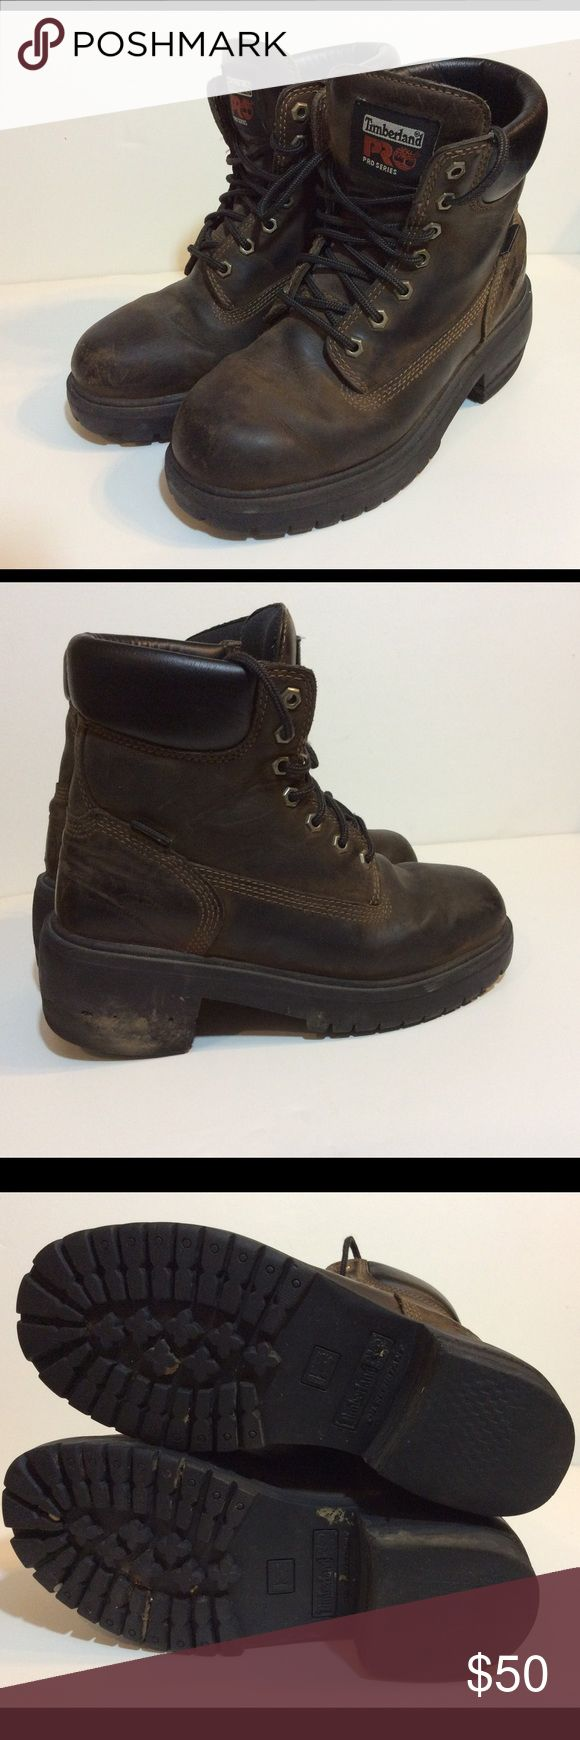 TIMBERLAND PRO SERIES BROWN LEATHER BOOTS 7.5 Wide Make this yours! Women's Timberland Pro Series Work Boots with Thermolite. Oil resistant. These are a WIDE size 7.5  Condition:  Some signs of wear. See pics. Timberland Shoes